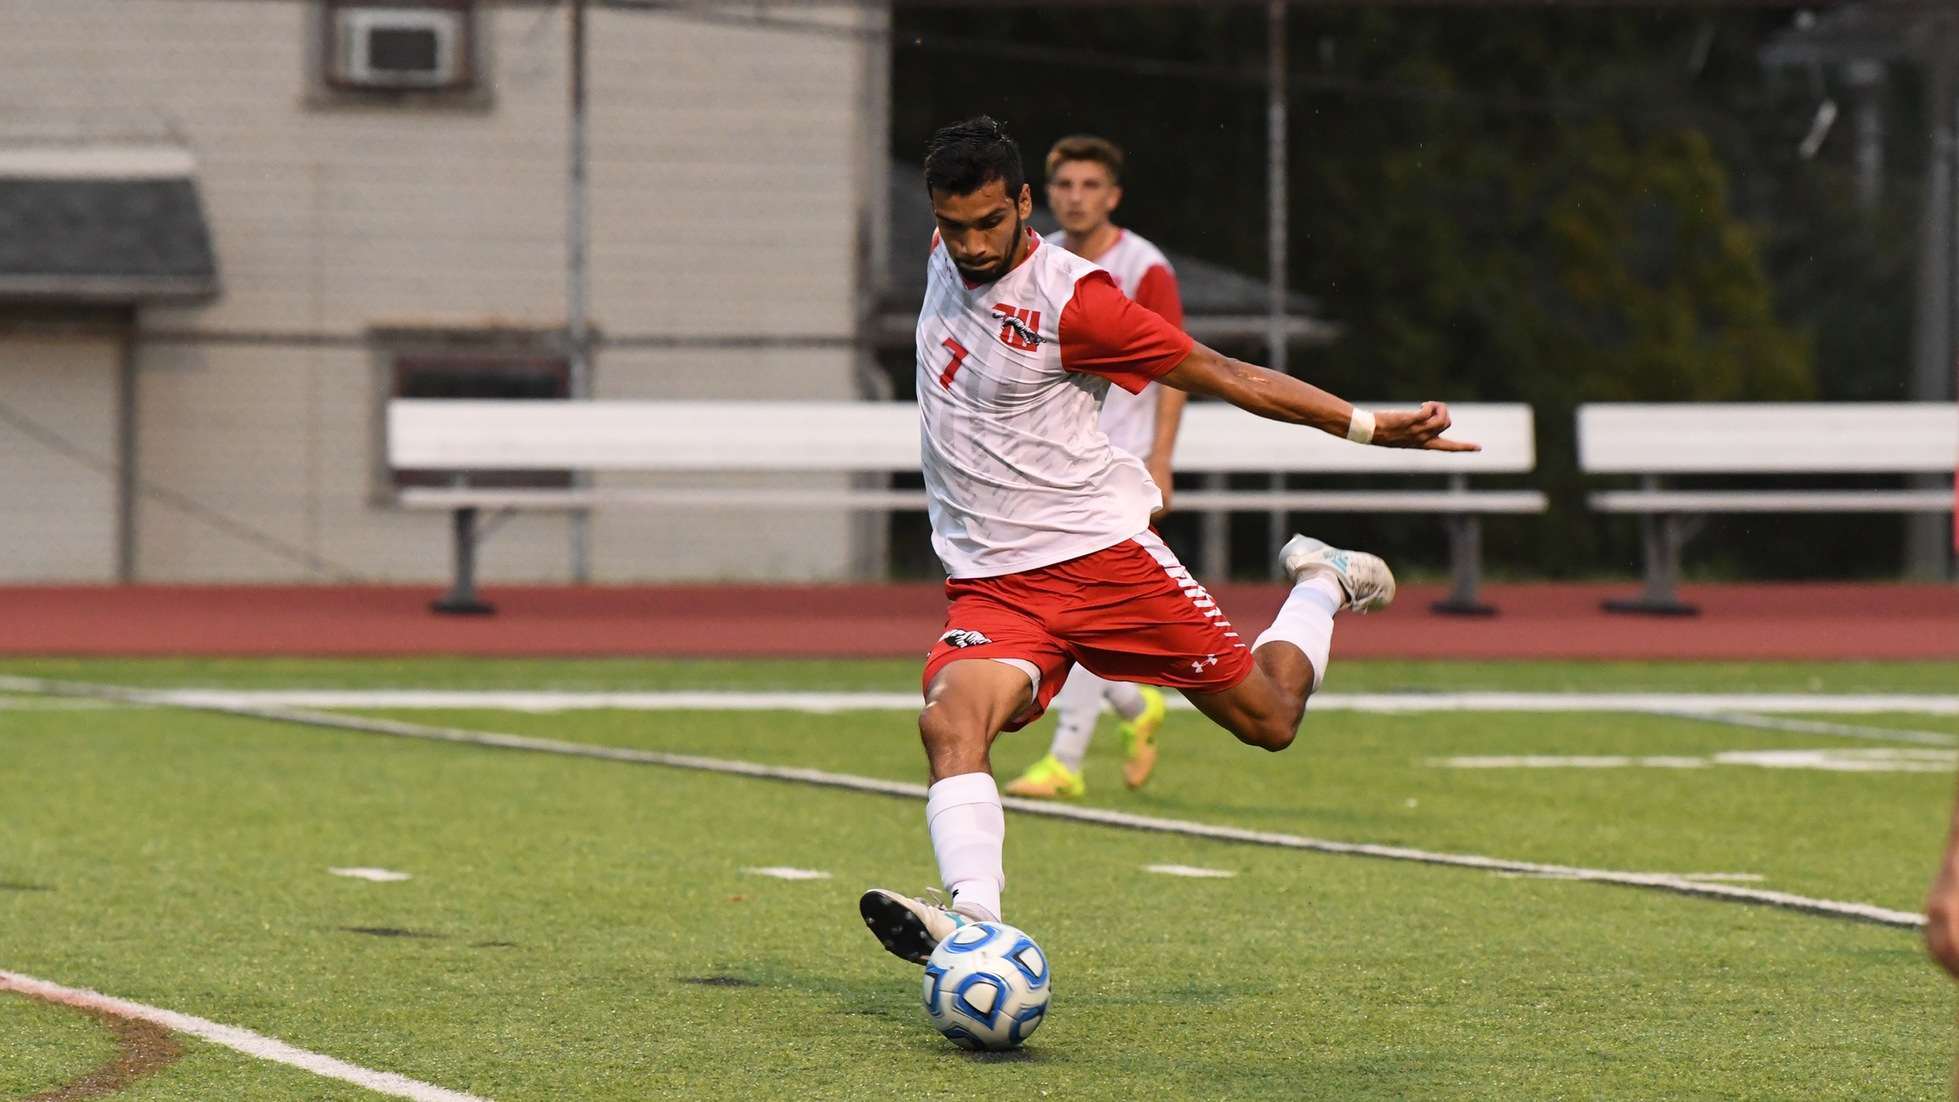 Zaragoza's Two Goals Takes Tigers Past Bluffton